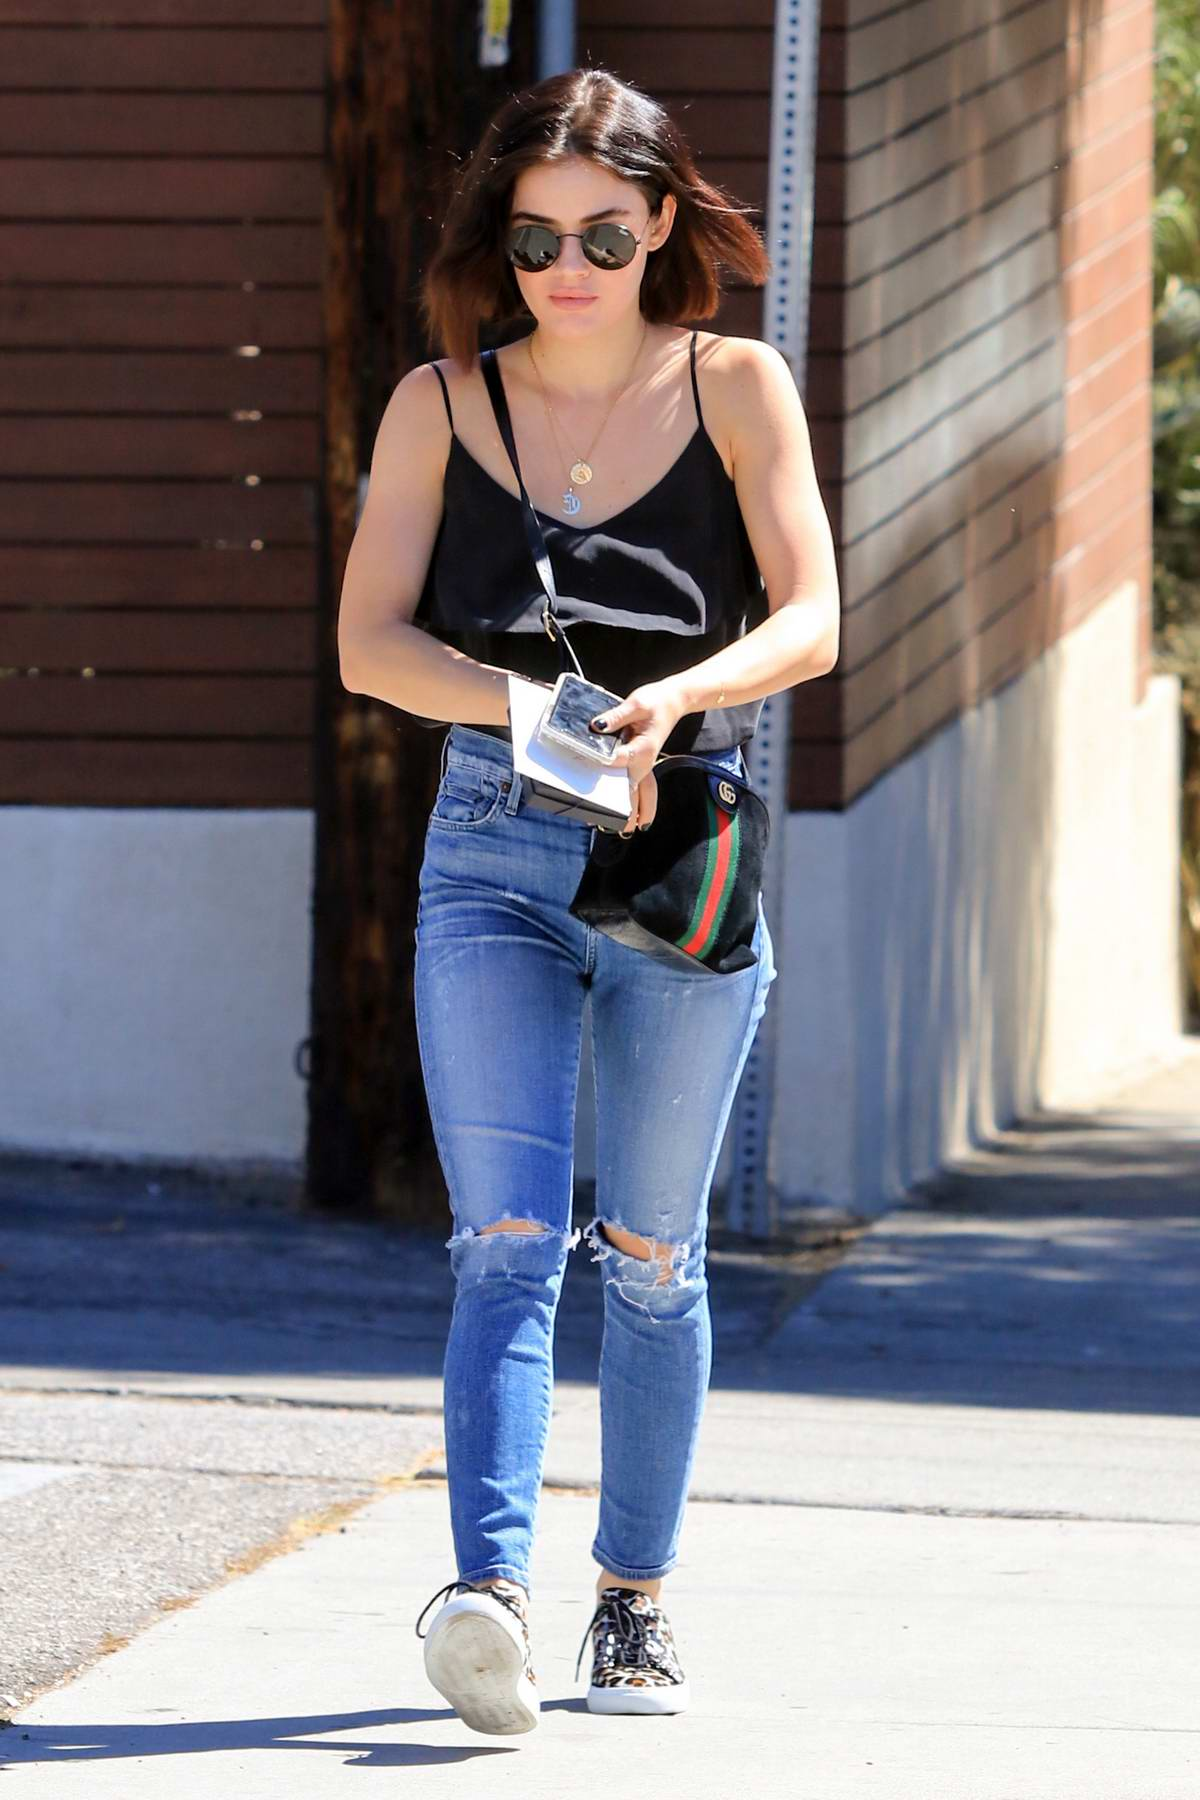 8923c89af3c lucy hale steps out for lunch in a black top and ripped jeans in los  angeles-170918_2